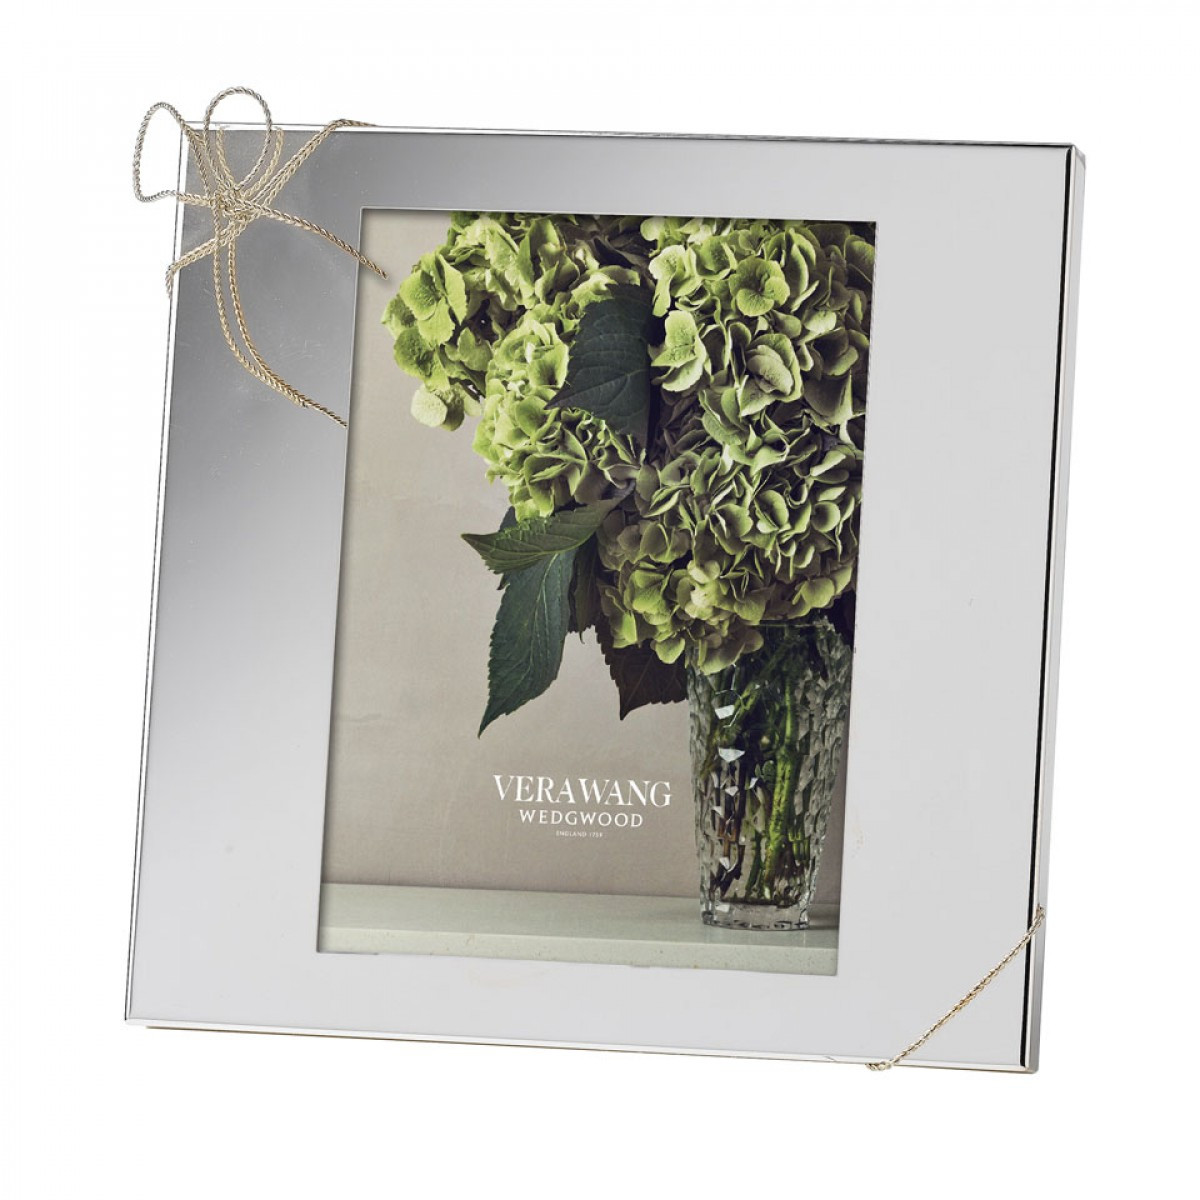 Vera Wang Love Knots Vase Of Love Knots Silver 5x7 Picture Frame Discontinued Vera Wang Intended for Love Knots Silver 5x7 Picture Frame Discontinued